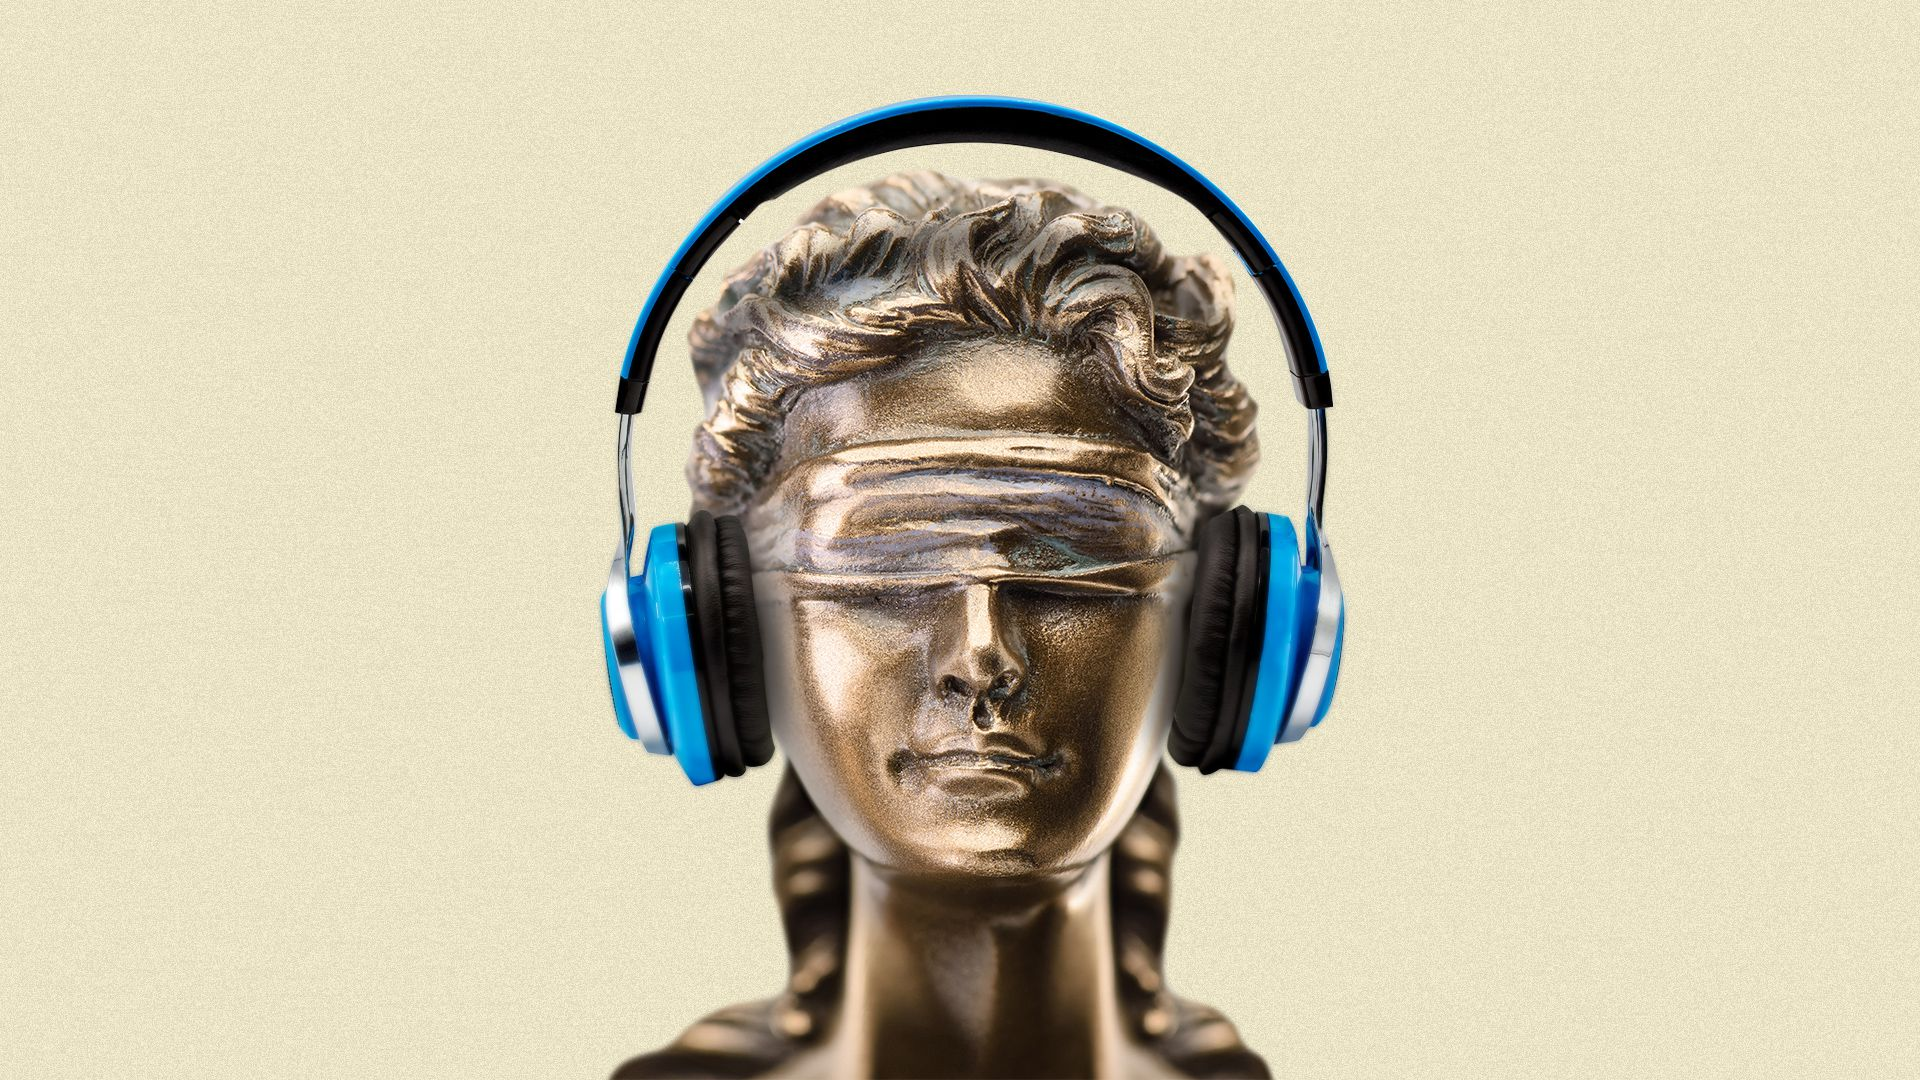 Illustration of Lady Justice with headphones on.